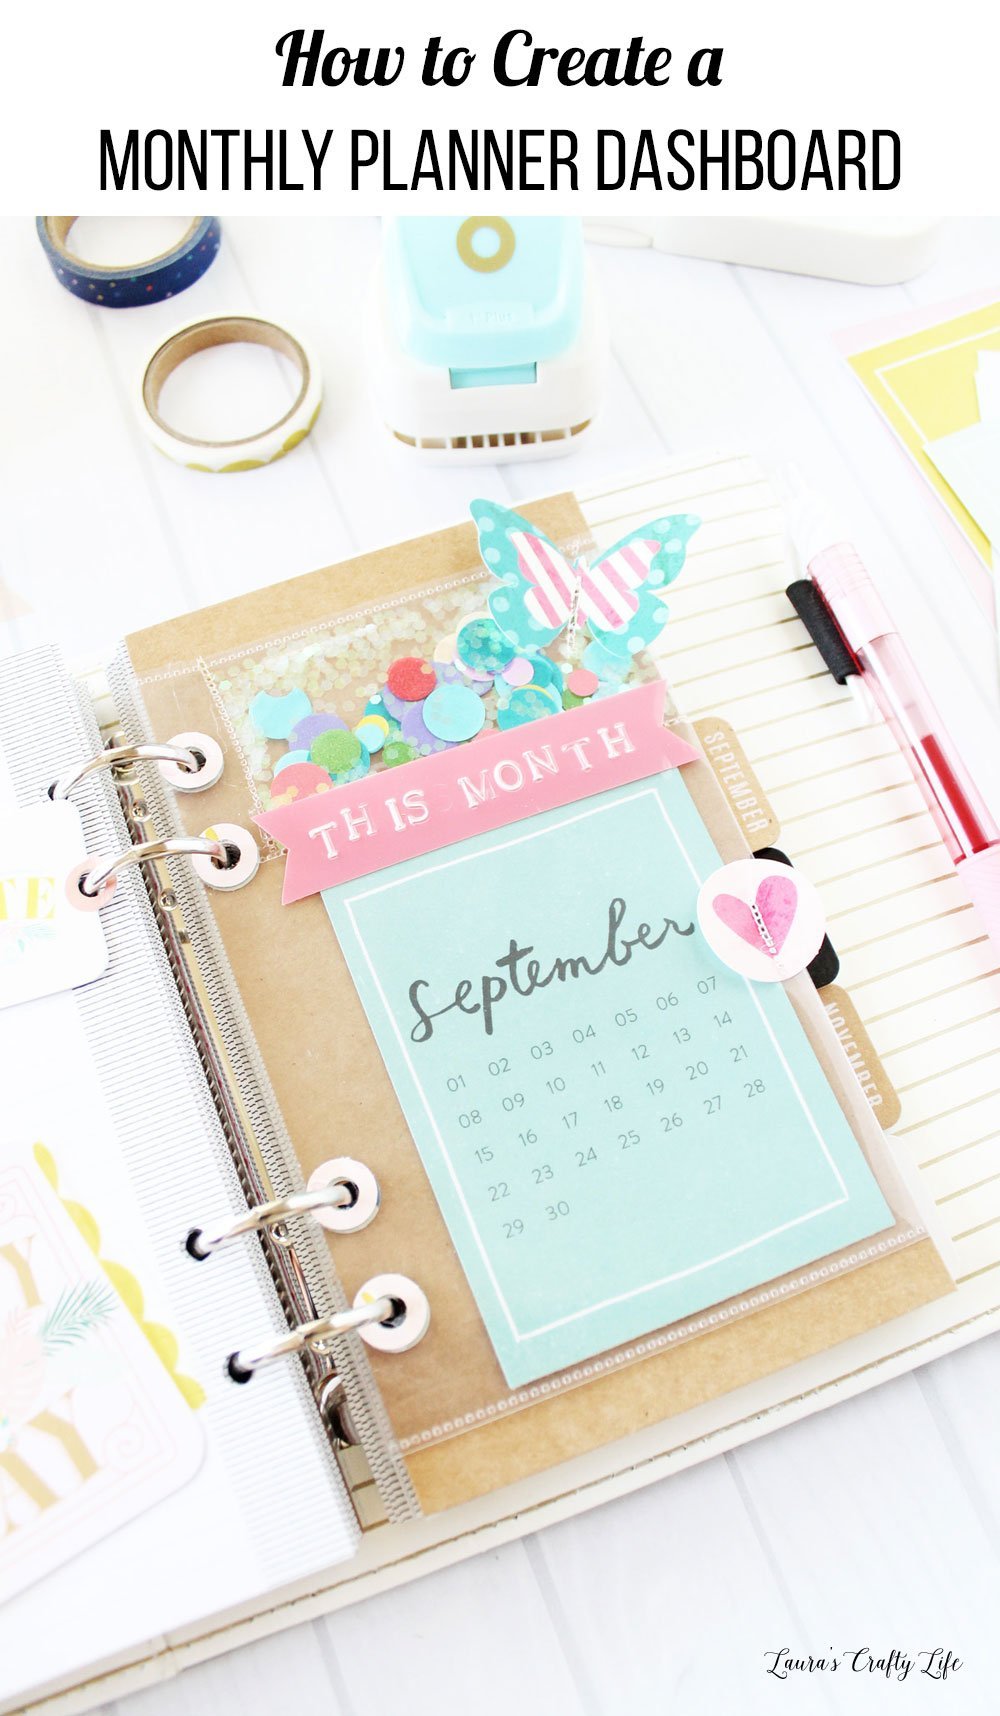 How to create a monthly planner dashboard using We R Memory Keepers tools #laurascraftylife #wermemorykeepers #planner #plannerdashboard